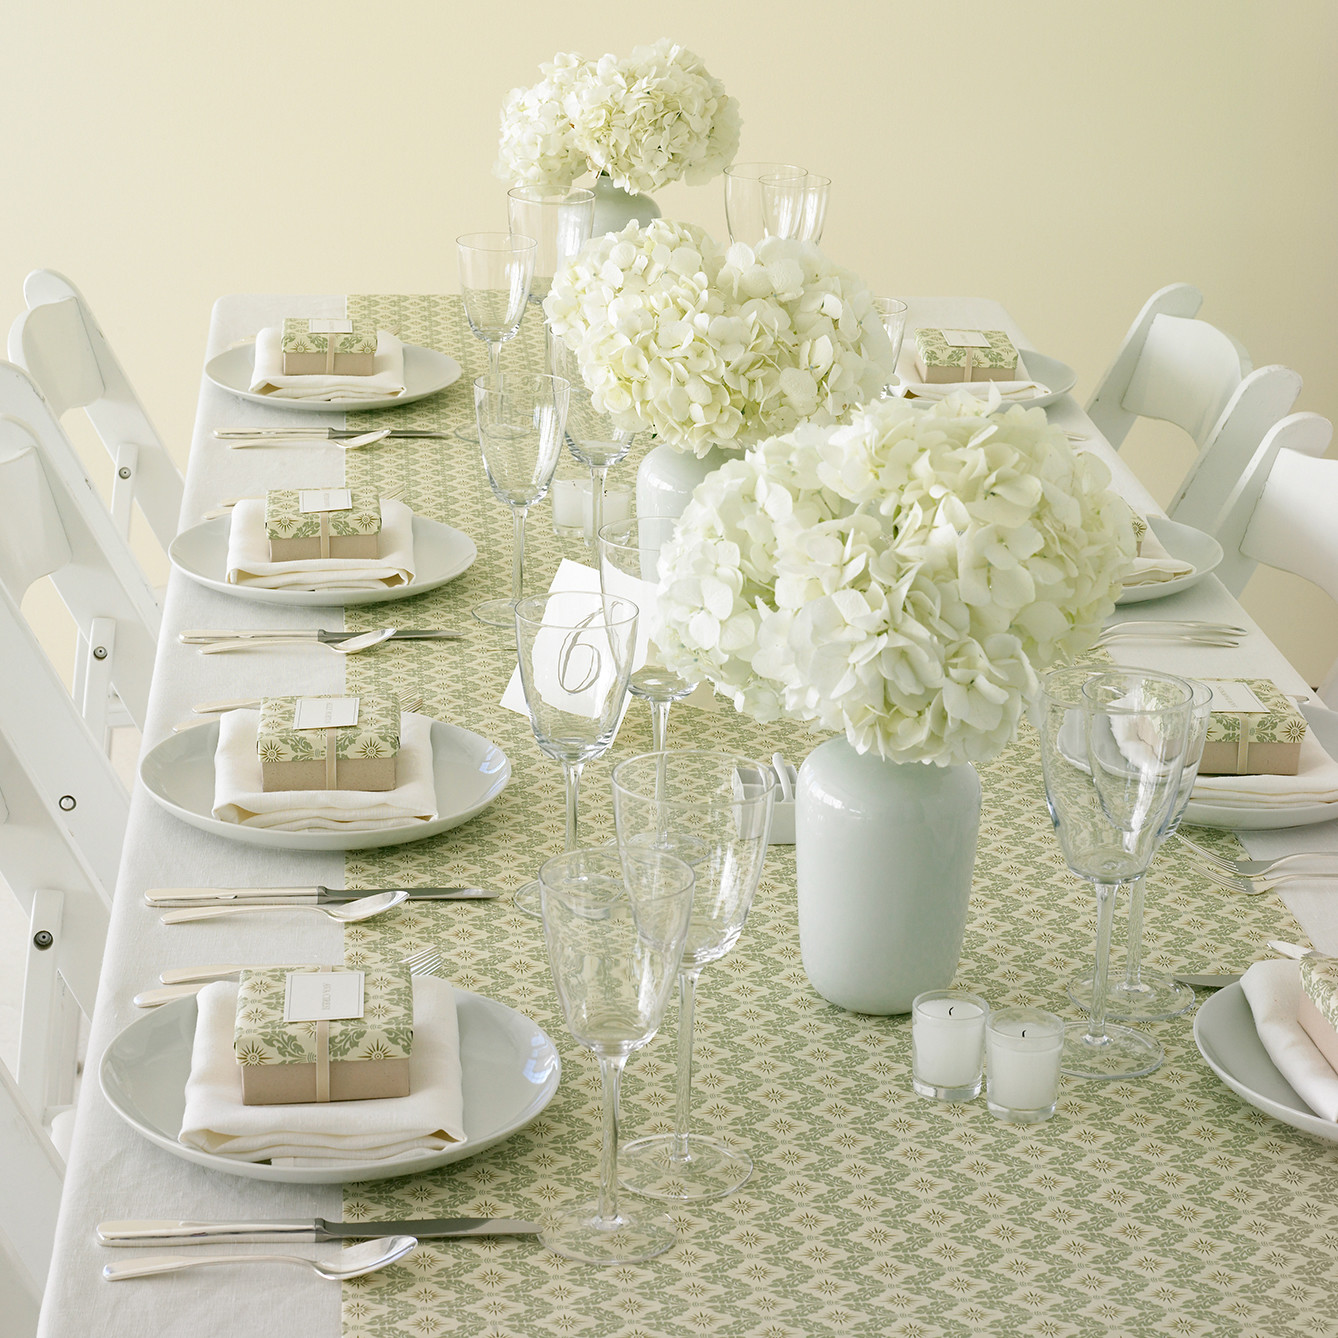 Hydrangea Wedding Centerpieces | Martha Stewart Weddings